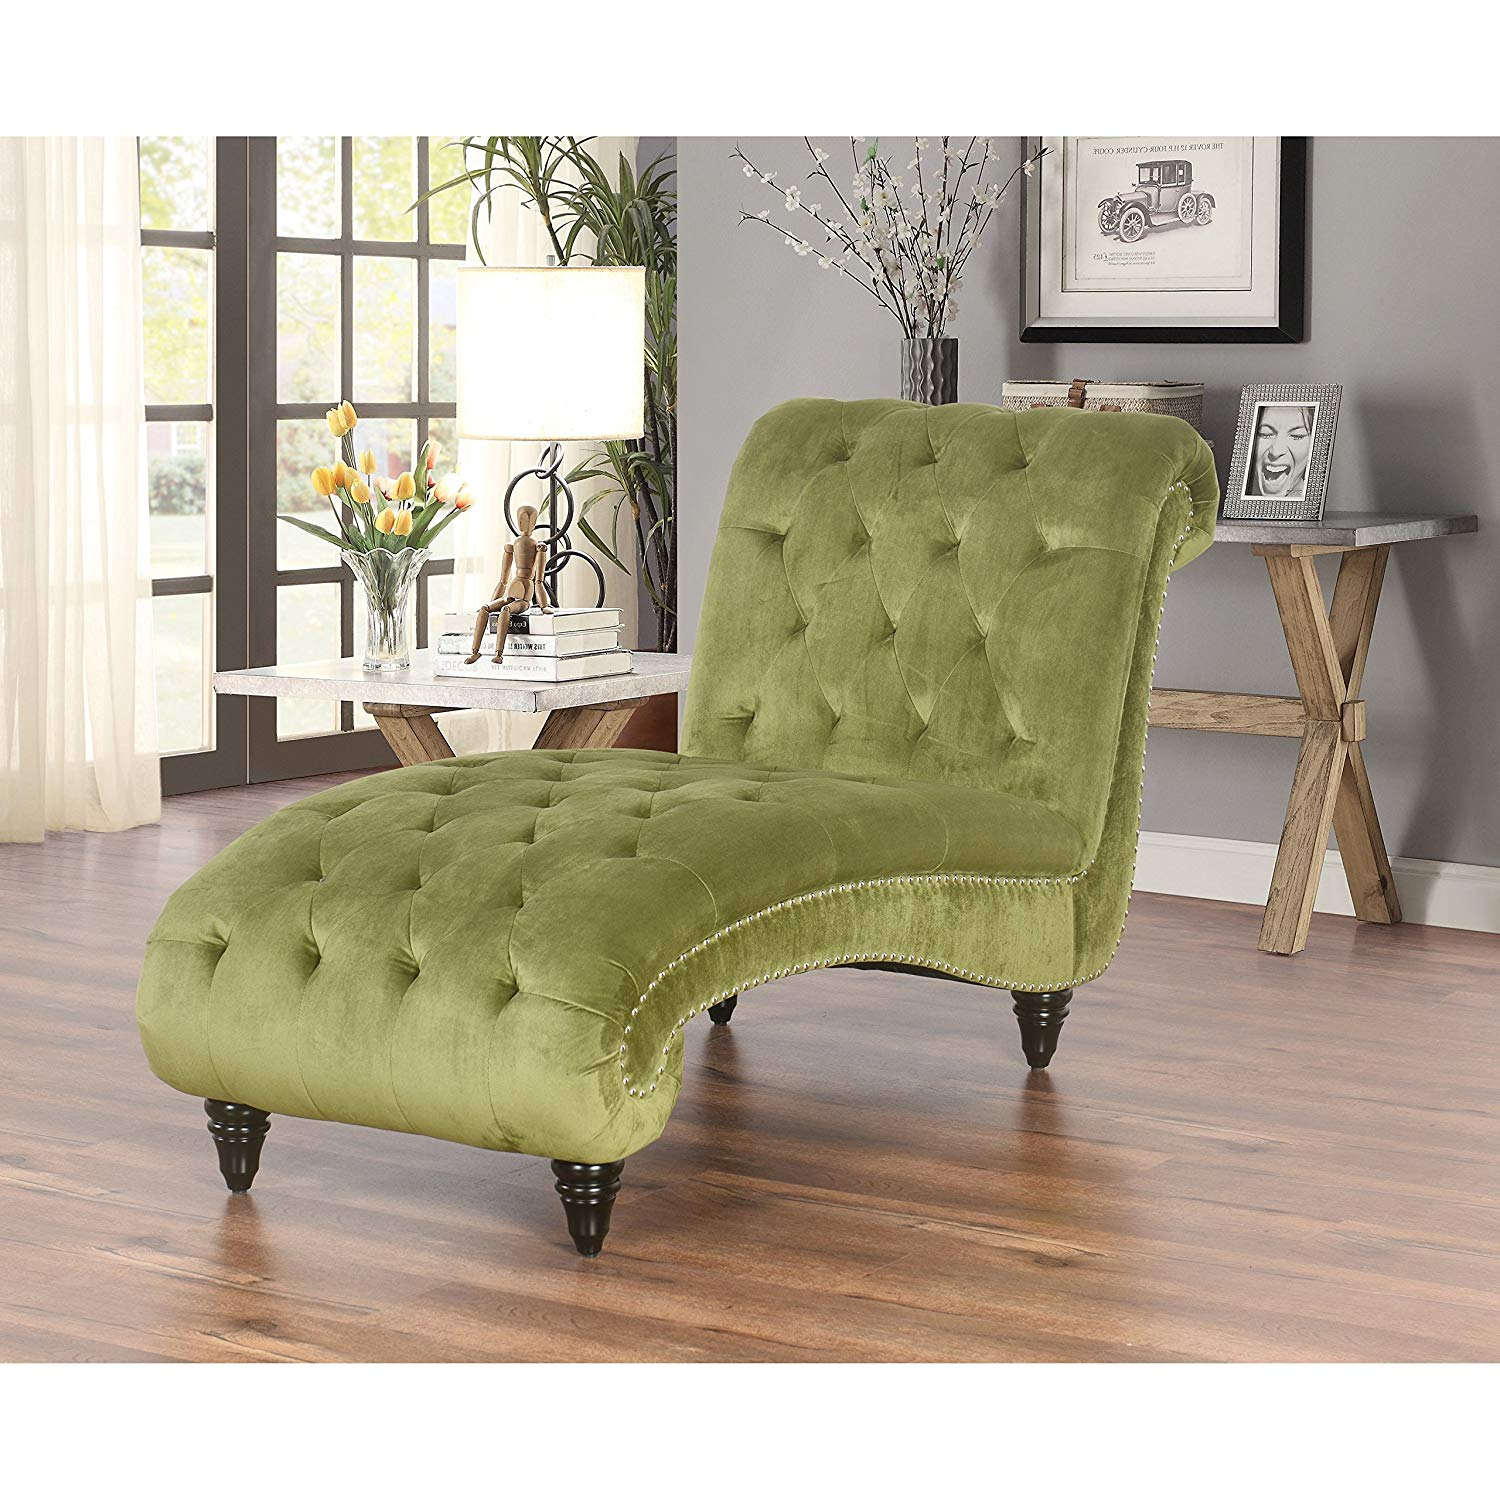 Transitional Tufted Velvet Upholstery Chaise Lounge Accent Chair with Nailheads and Espresso Finish Legs - Includes Modhaus Living Pen (Green)